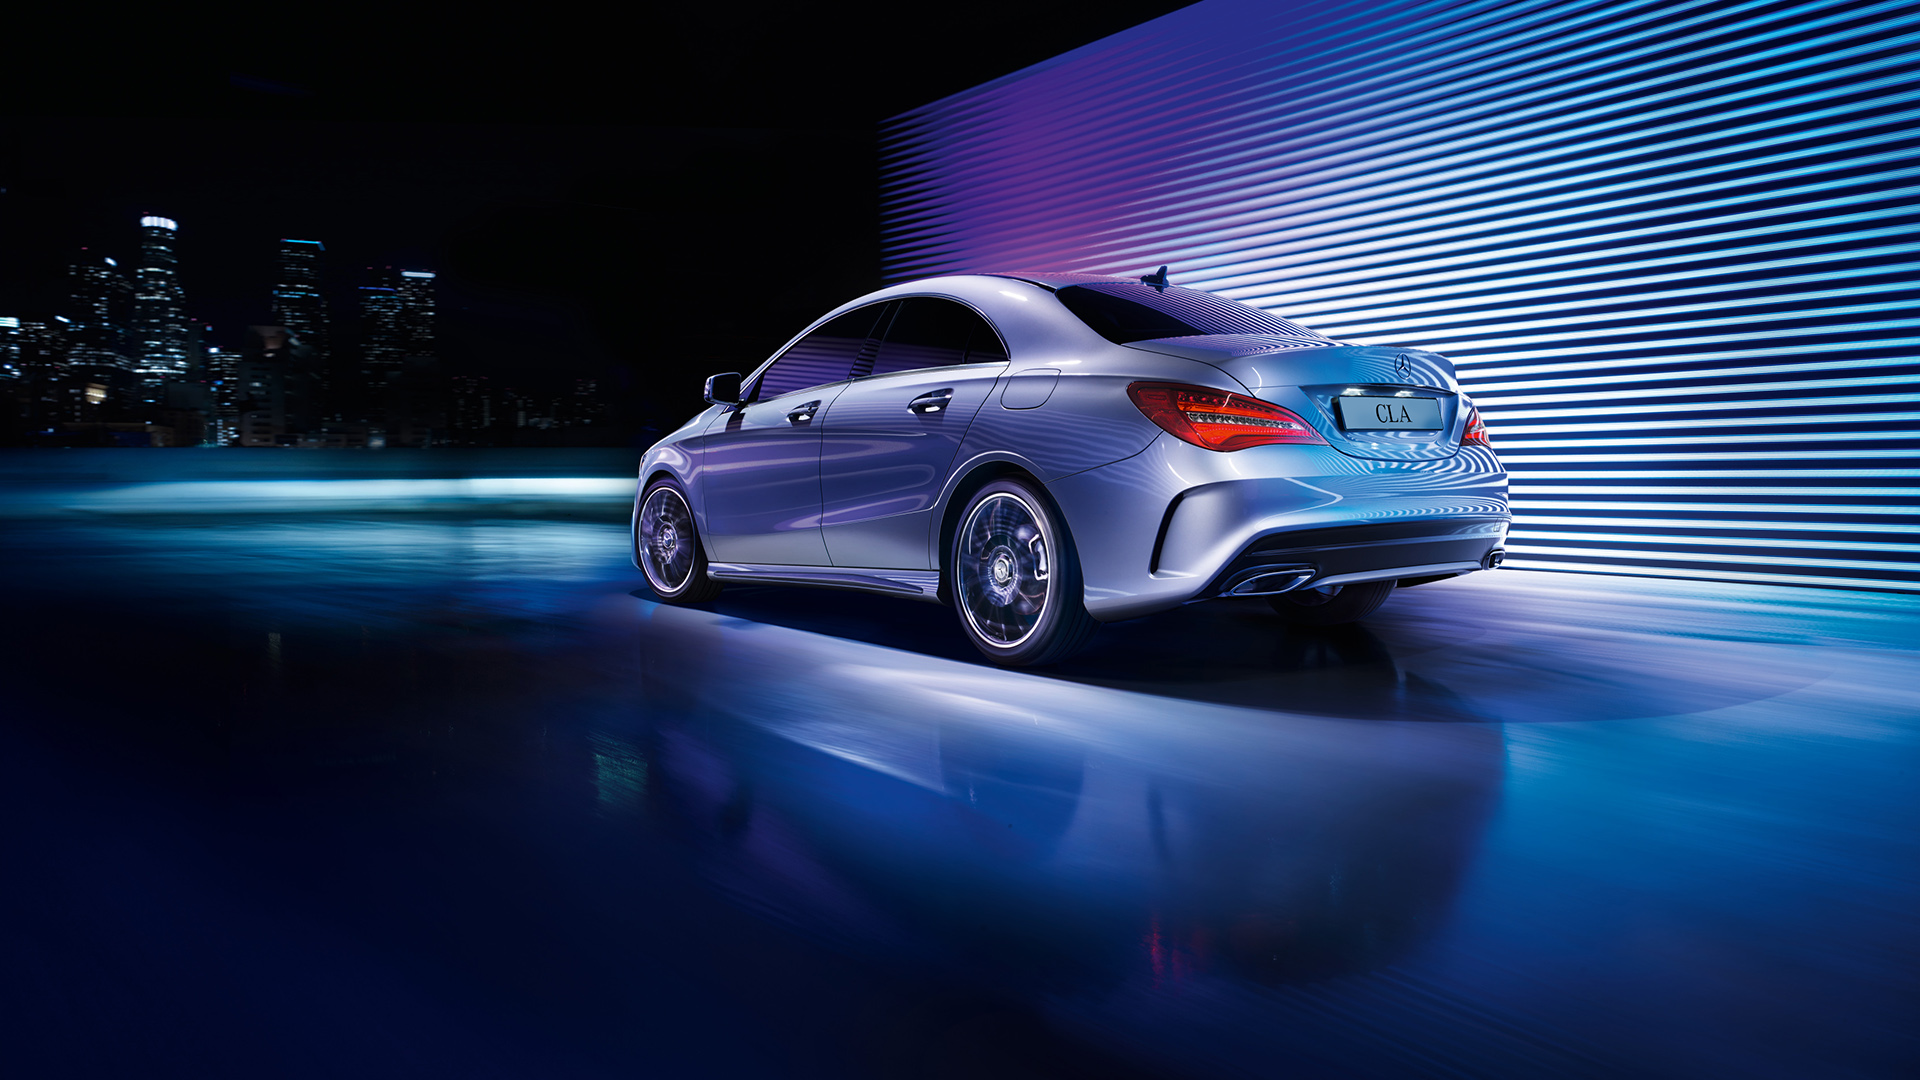 Mercedes CLA, HD Cars, 4k Wallpapers, Images, Backgrounds ...